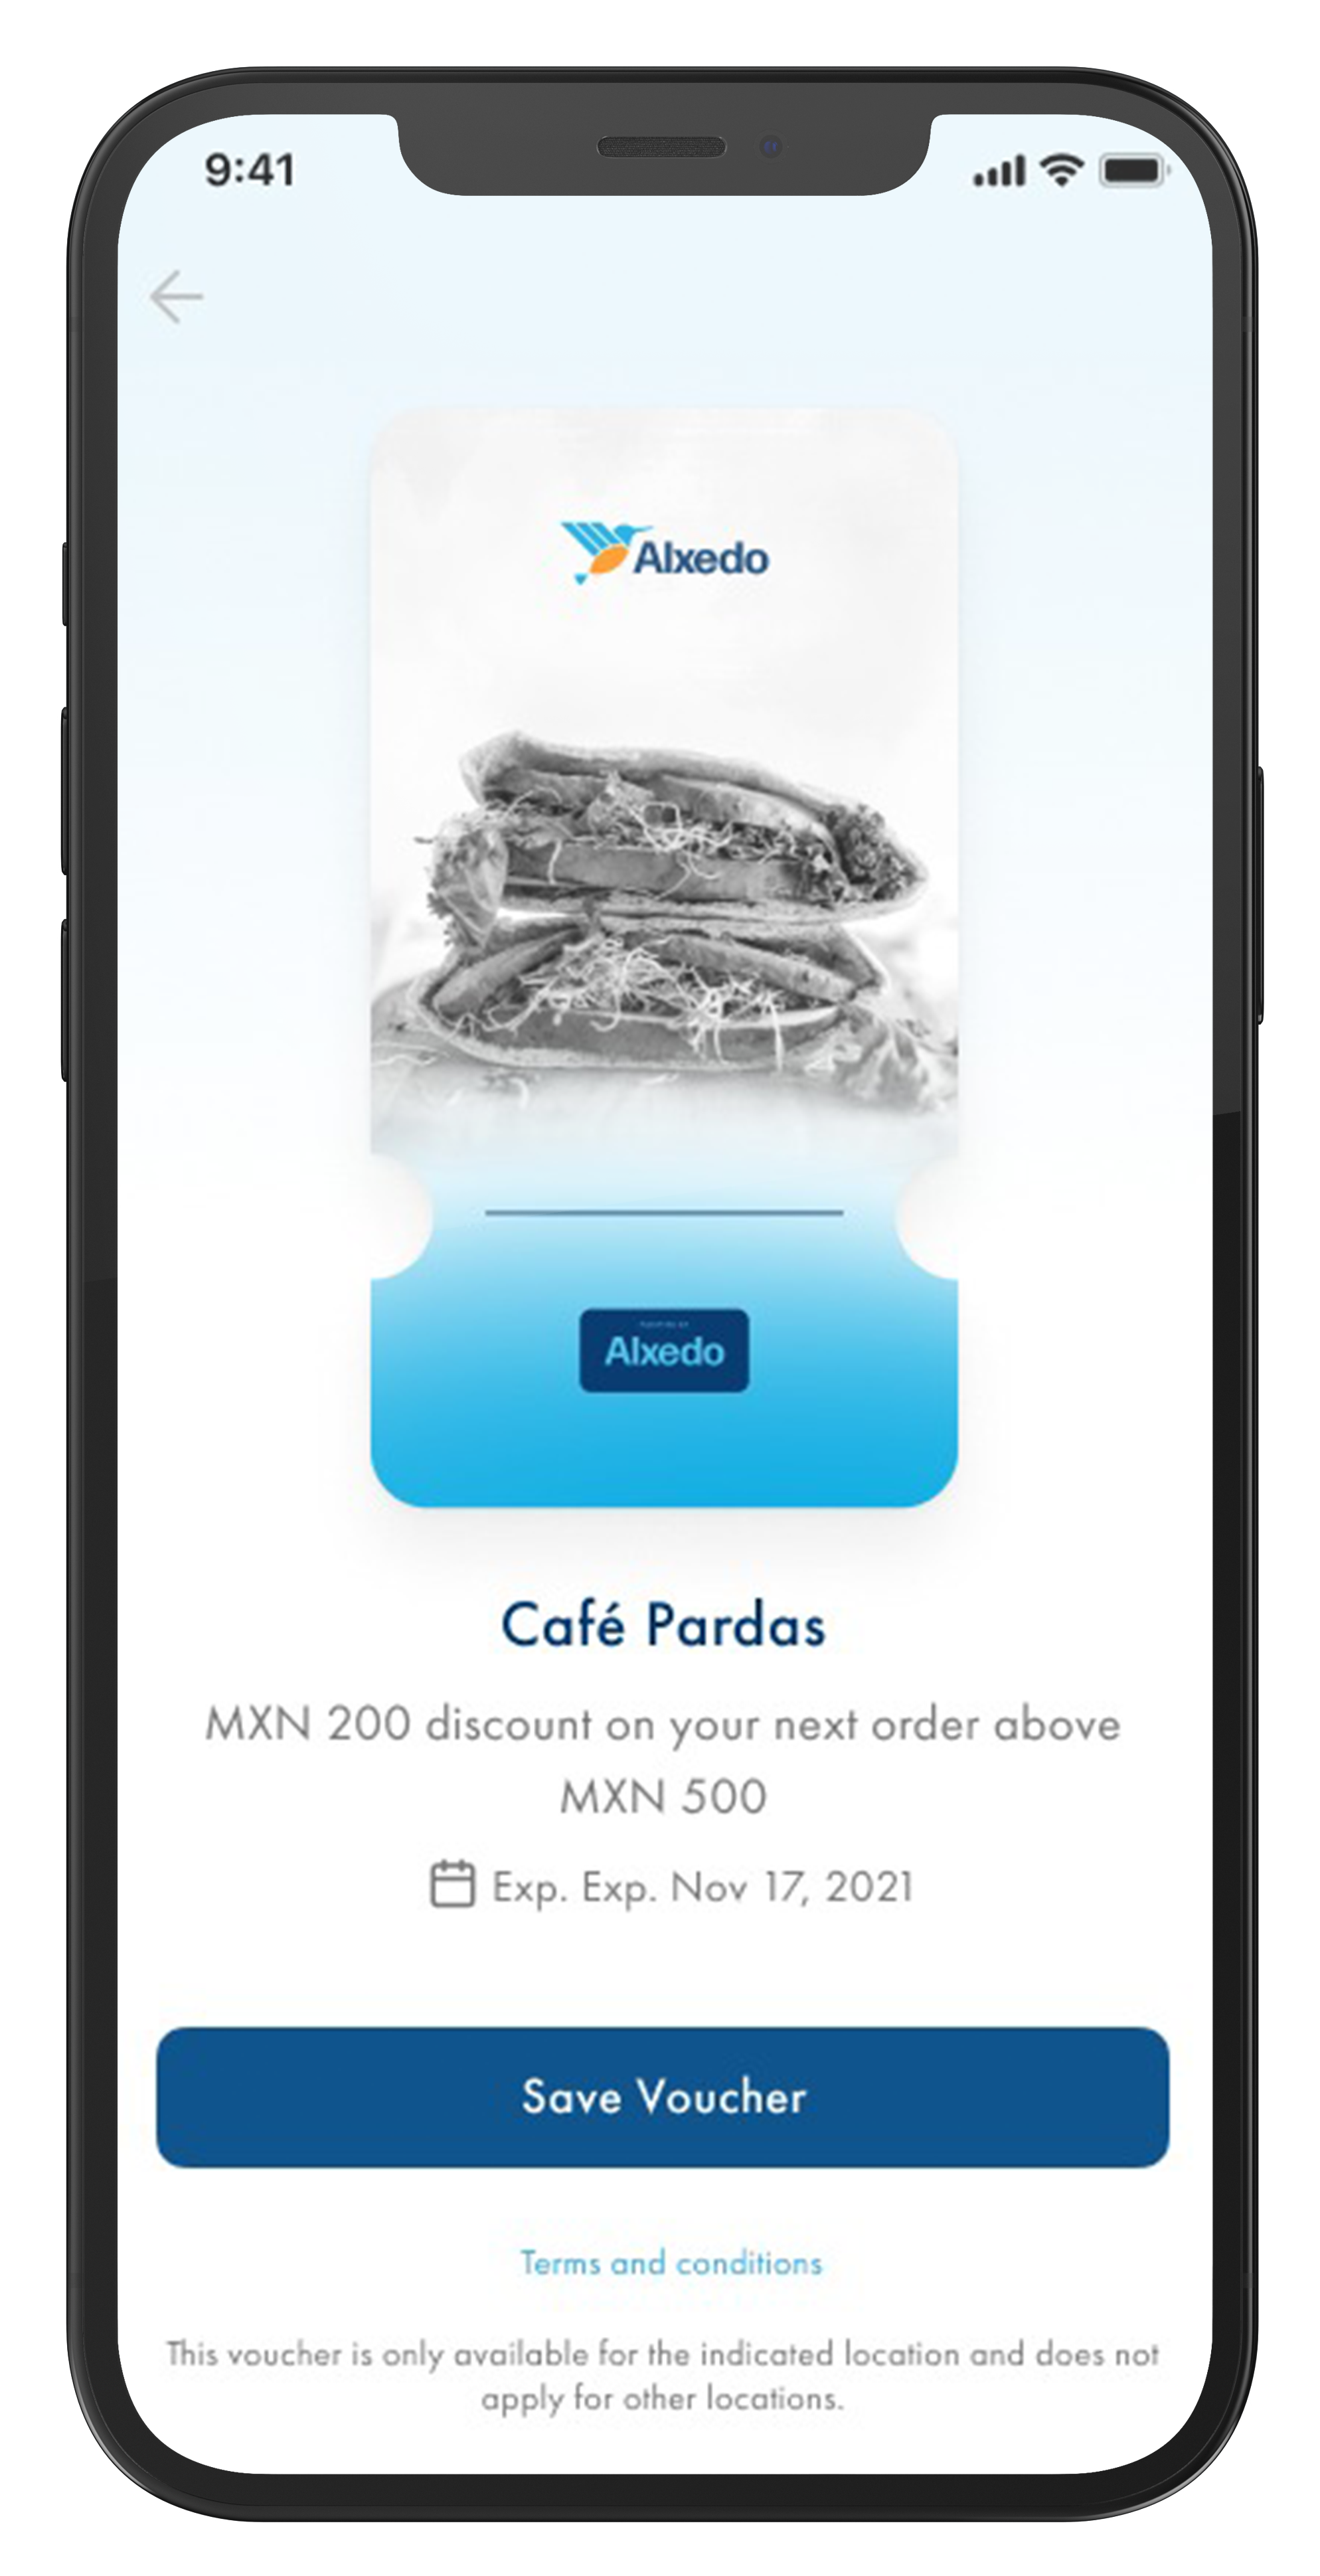 Phone with Alxedo App opened showing a restaurant voucher.